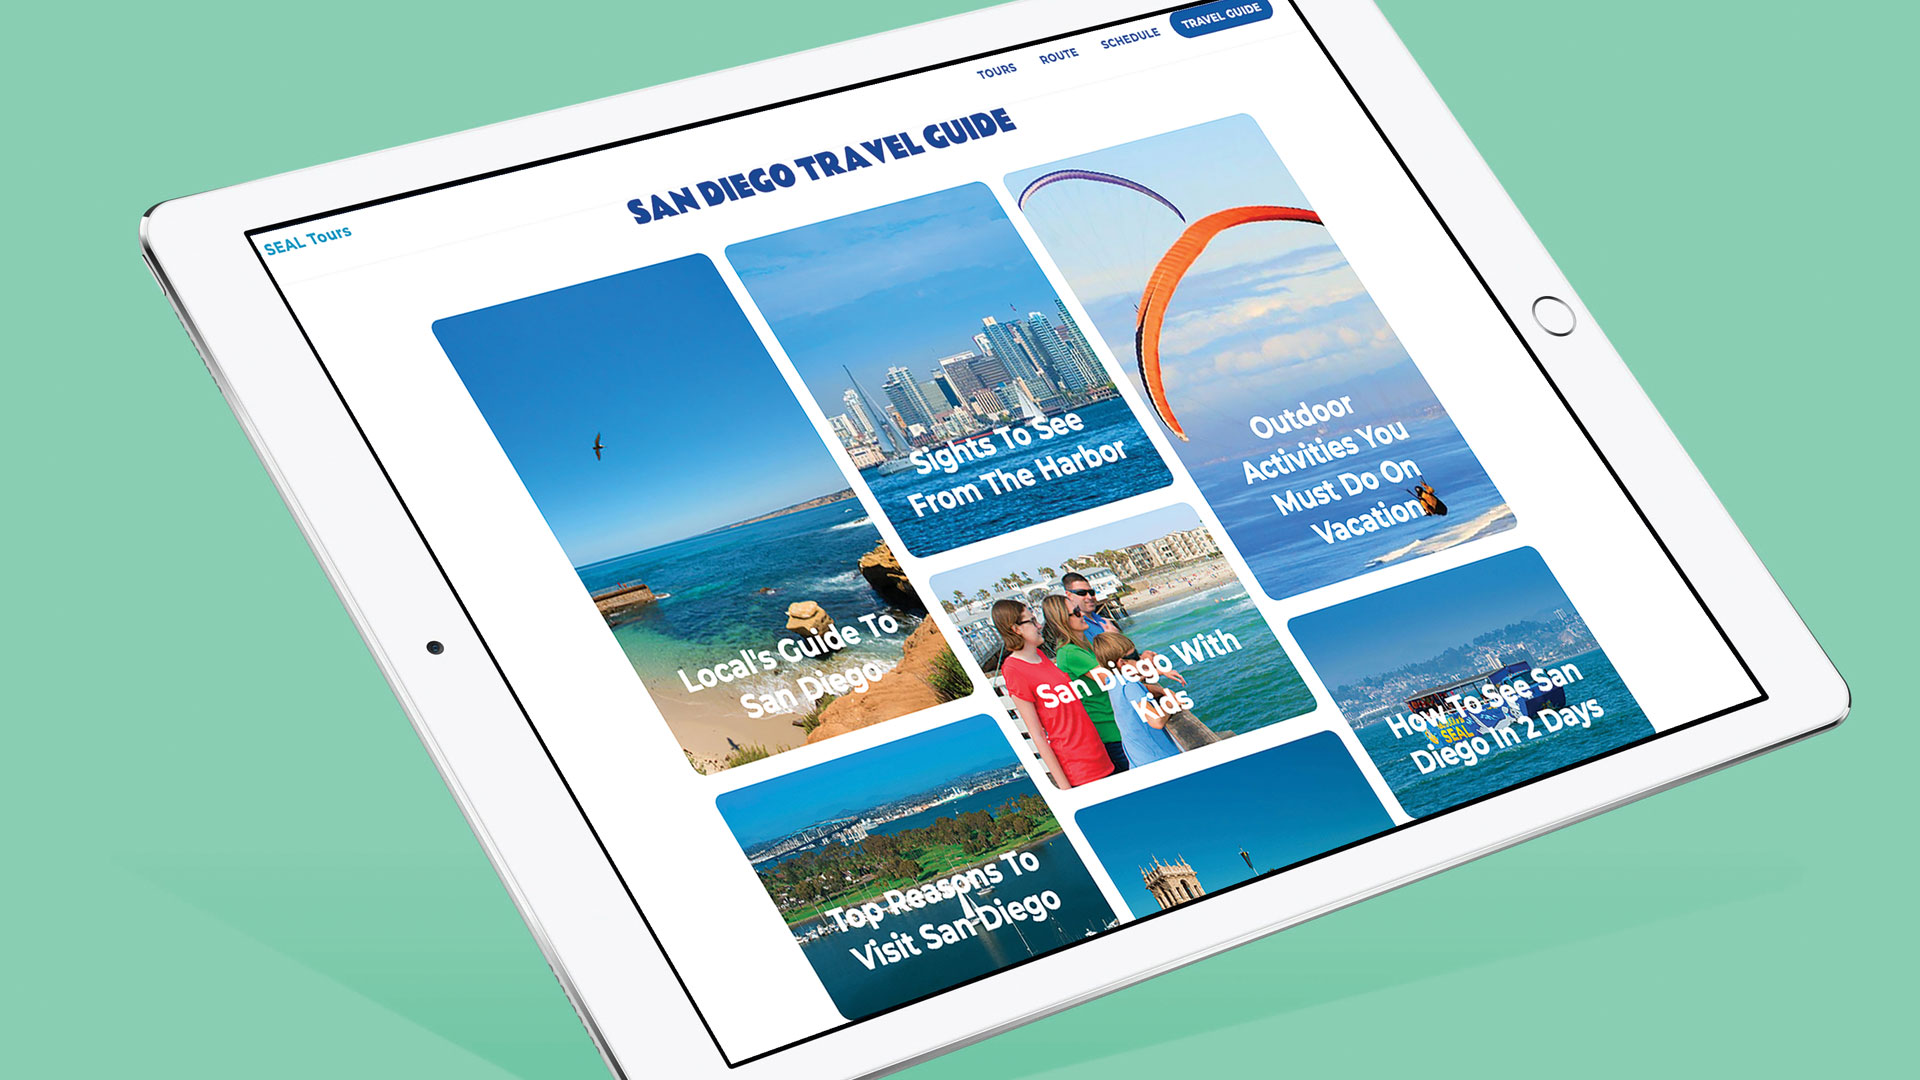 picture of tablet showing san diego website travel guide page